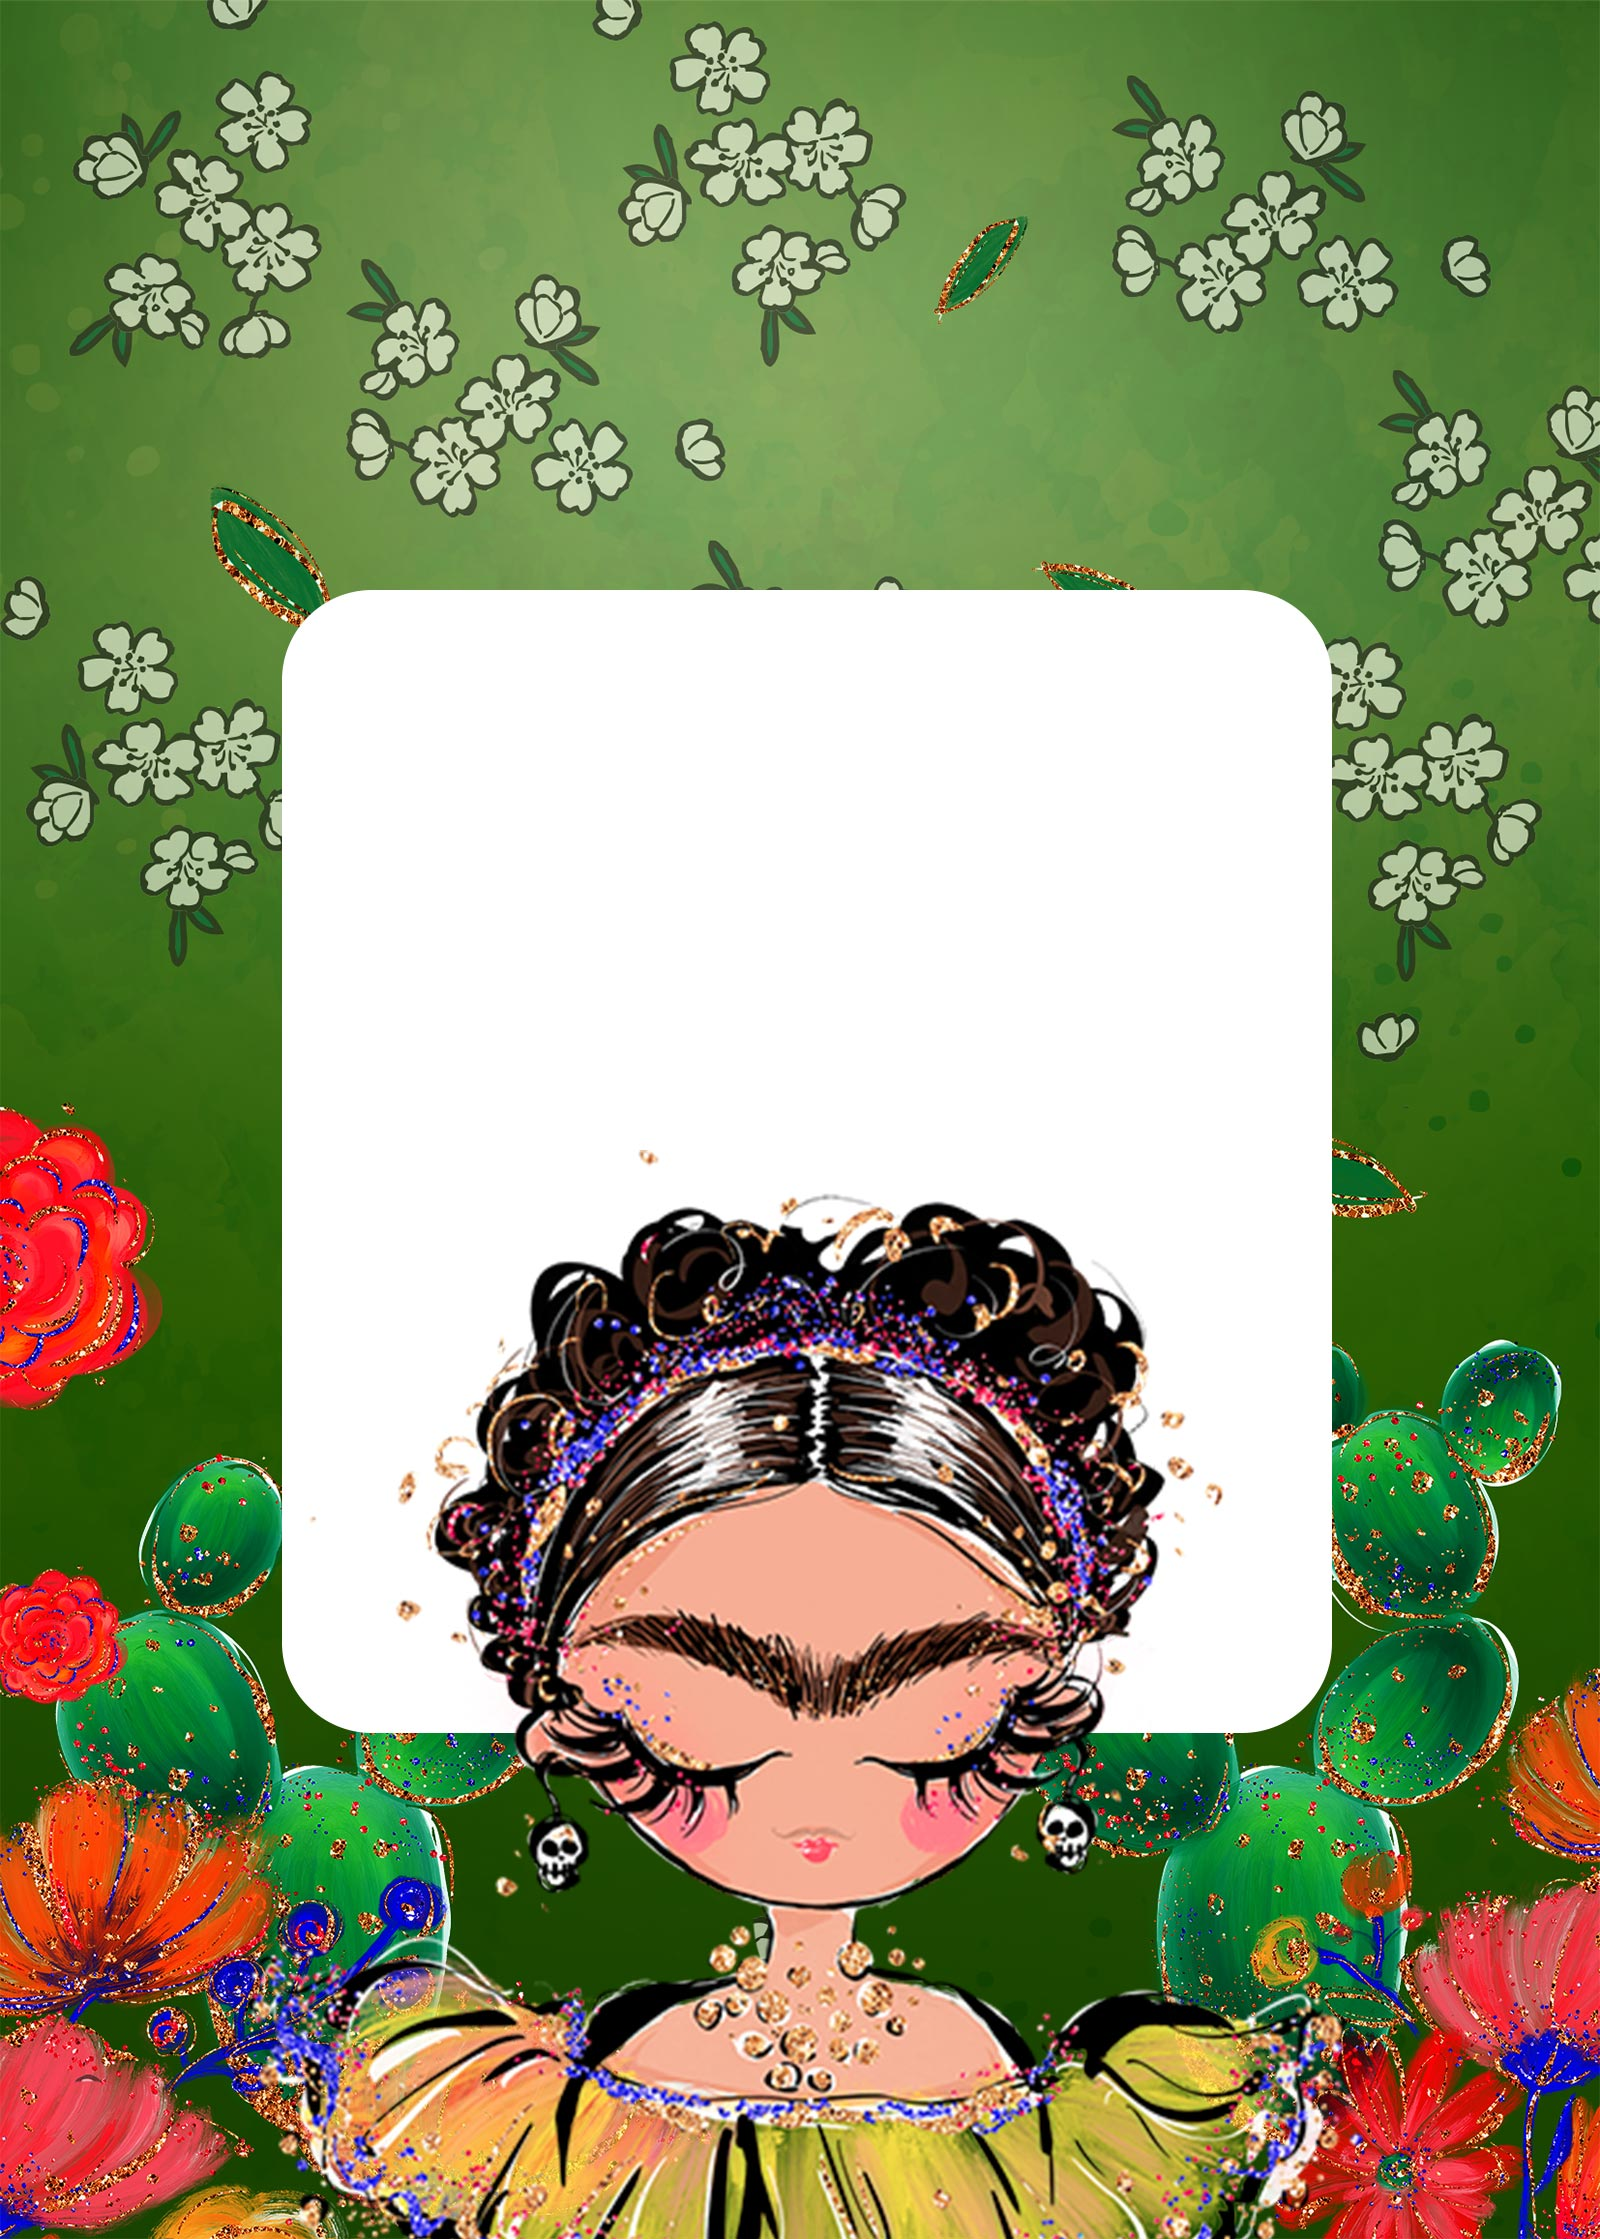 Planner Frida Kahlo contracapa